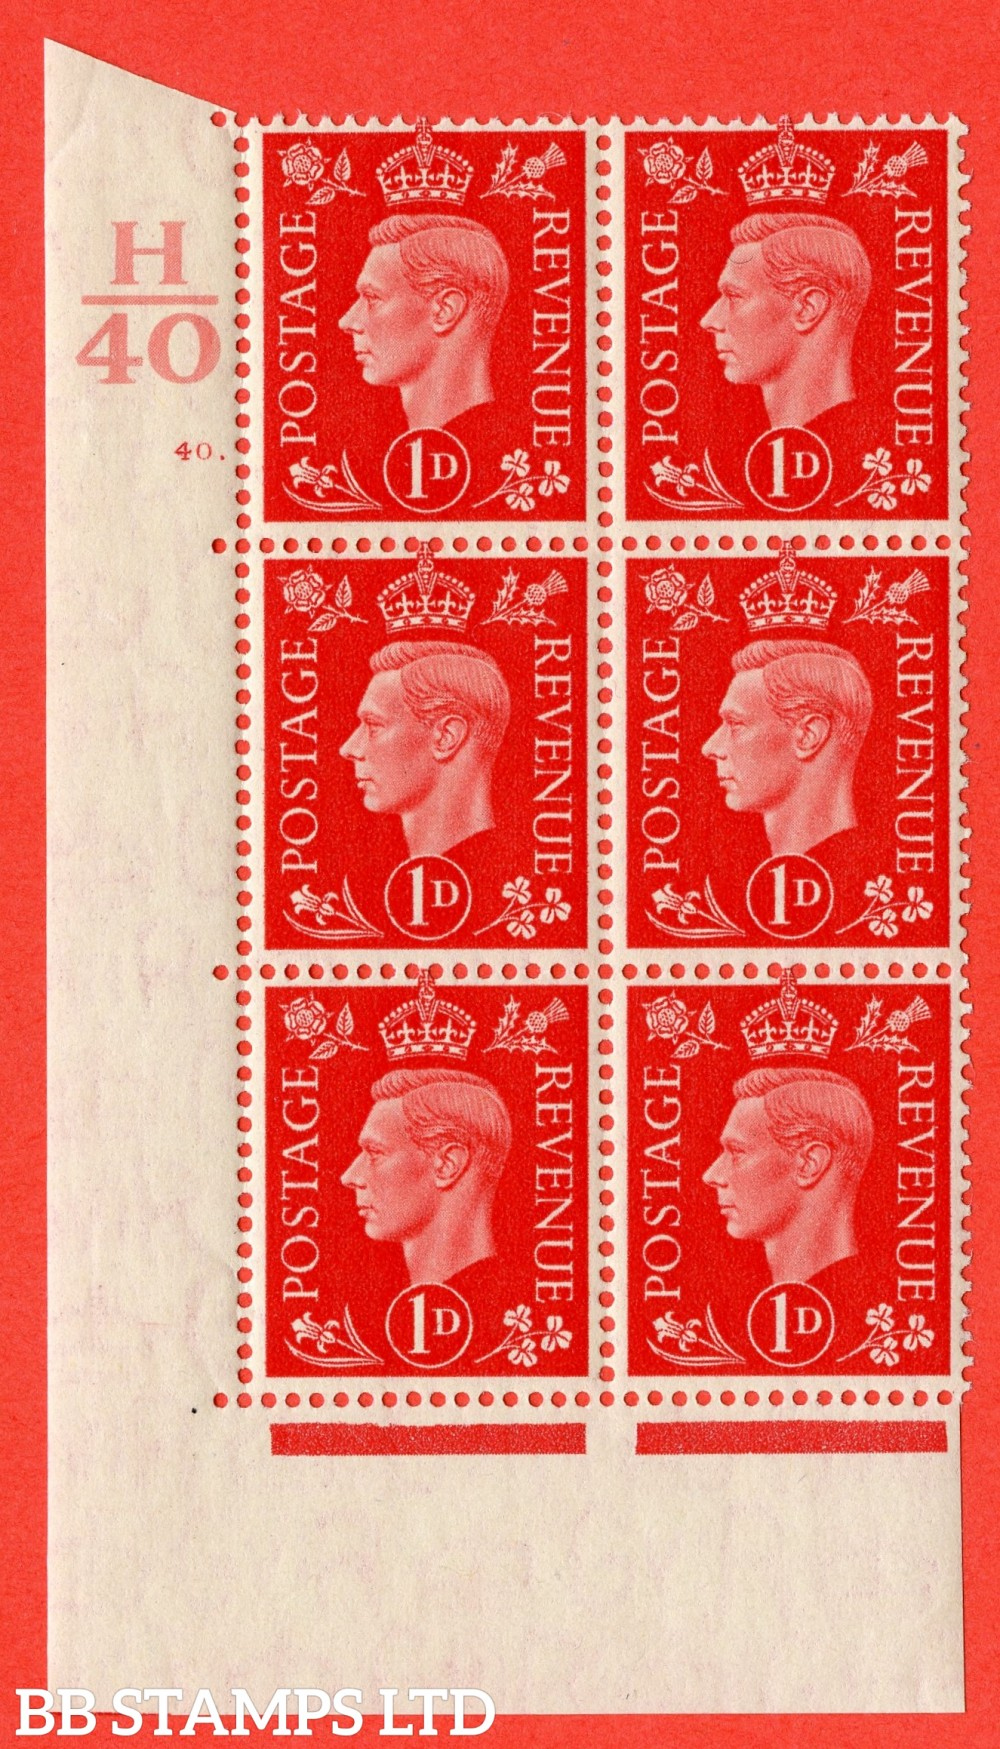 "SG. 463. Q4. 1d Scarlet. A superb UNMOUNTED MINT "" Control H40 cylinder 40 dot "" block of 6 with perf type 5 E/I with marginal rule."